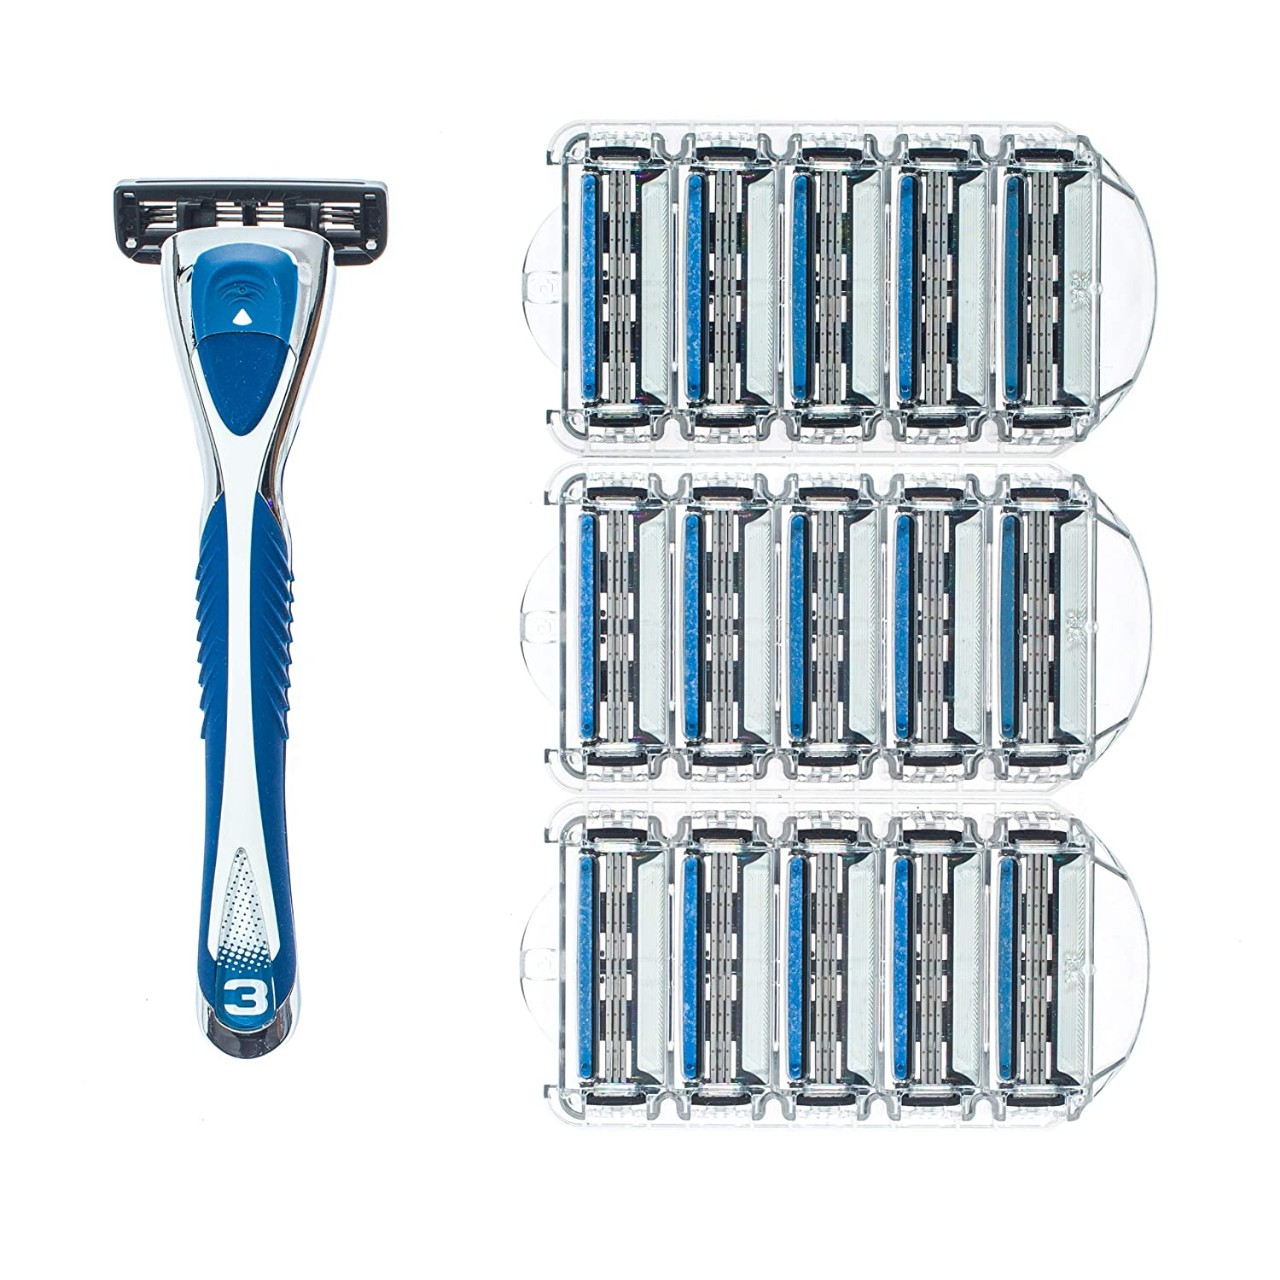 Personna Men's 3 Blade Razor System - Mens Shaving Razors - Razor Handle with 15 Replacement